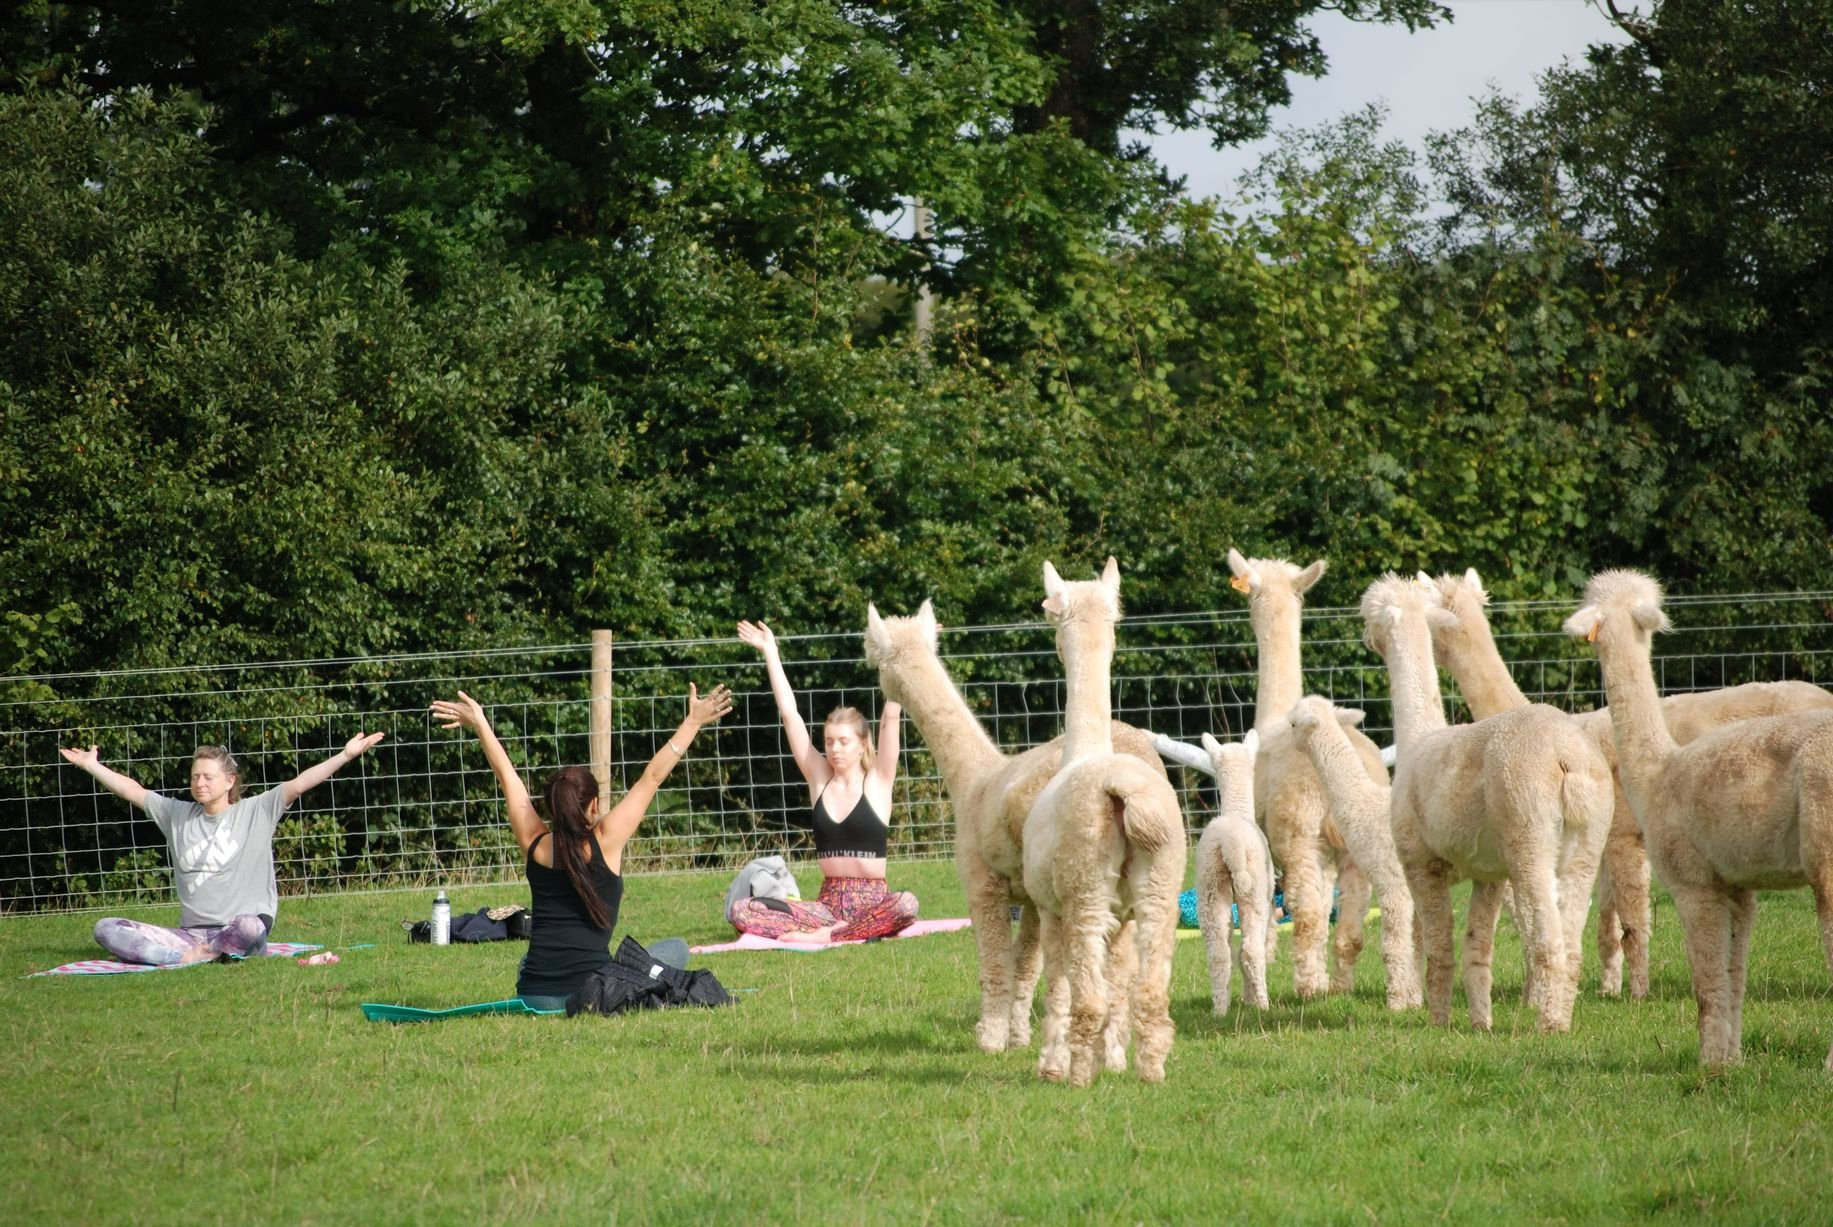 "A yoga class is held at Rosebud Alpacas in Devon. See SWNS story SWPLalpaca; A farm has become the first place in Britain to offer yoga classes - in a field full of ALPACAS. Rosebud Alpacas is located on a remote smallholding among rolling countryside and has been hailed as the perfect location for calming exercise. But to add to the experience owners Nick and Lucy Aylett have decided to run their yoga classes in the same field where they keep their alpacas. And they say their alpaca yoga classes in South Molton, Devon, are a ""unique experience"" which are ""great for mind, body and soul""."